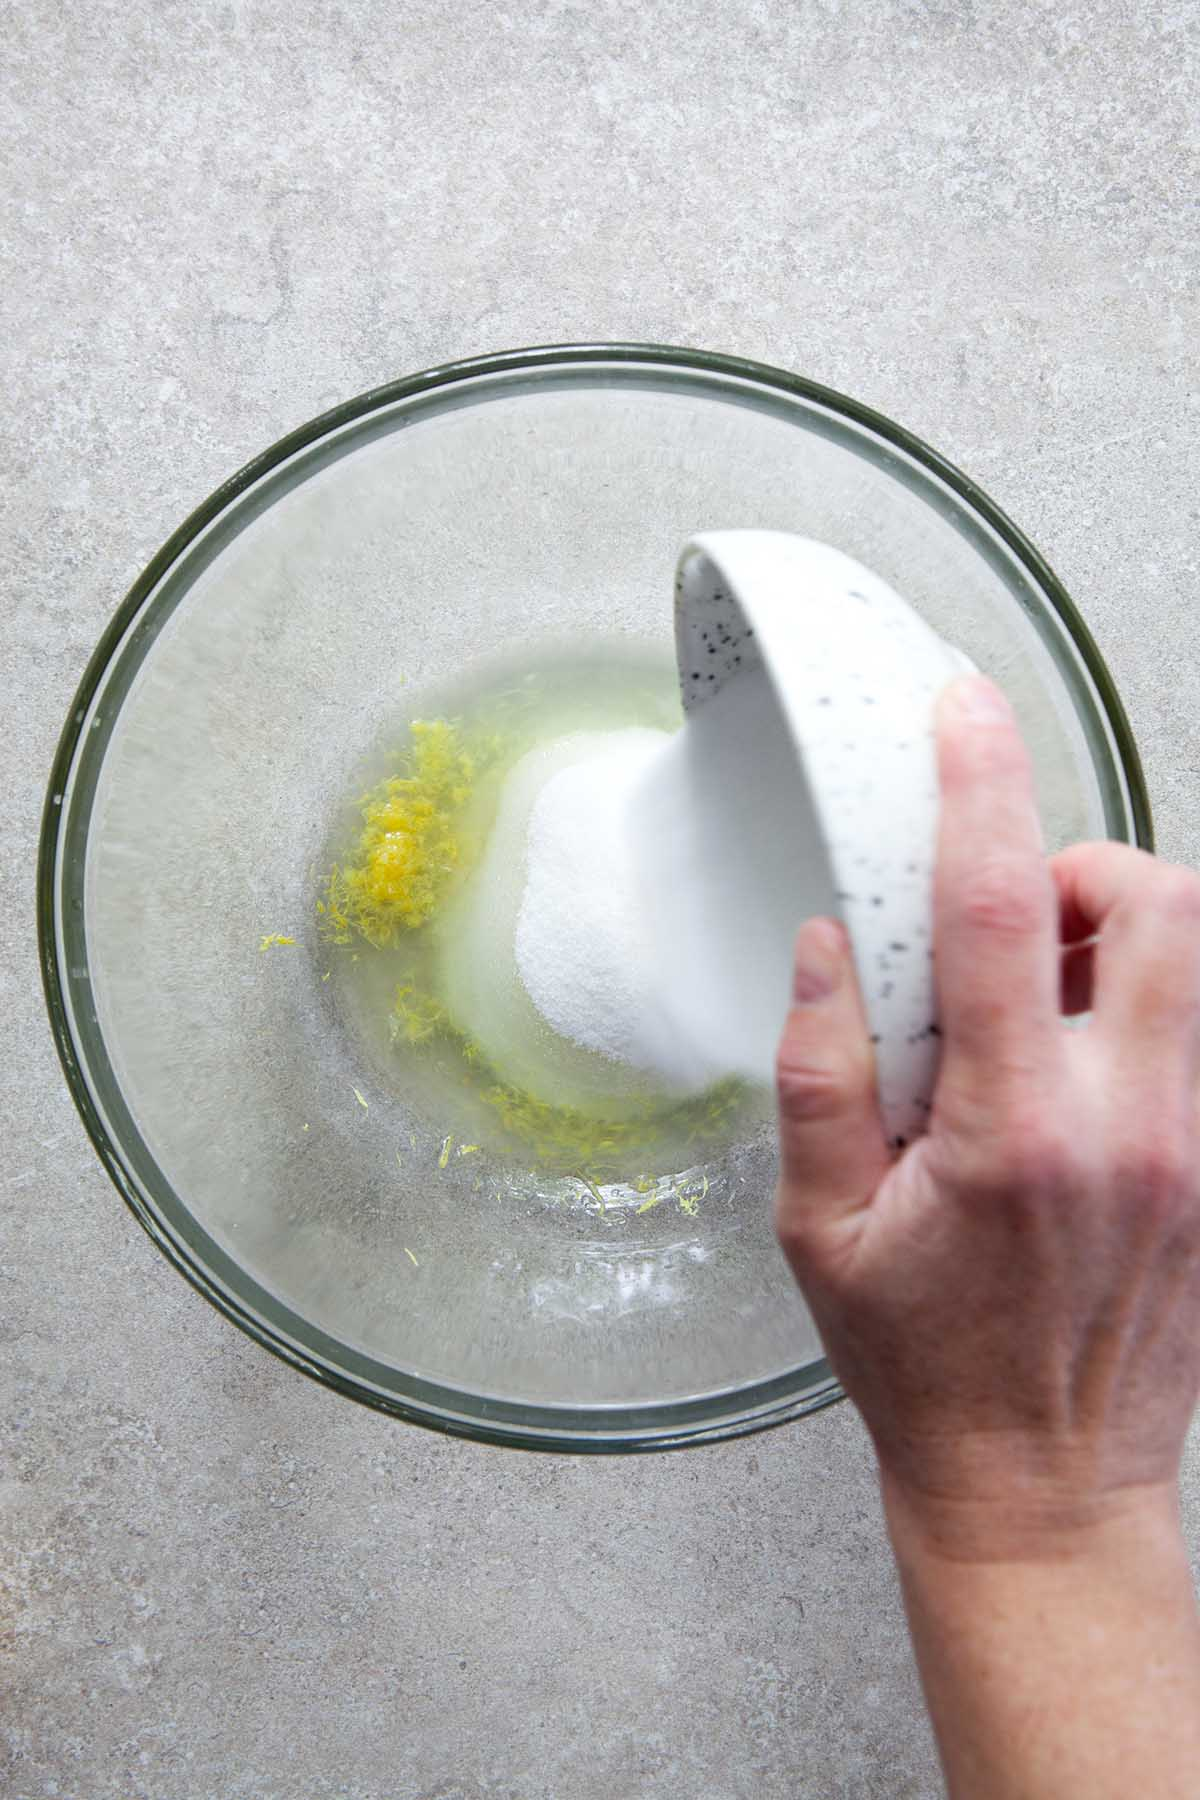 A hand pouring sugar from a small speckled bowl into a large glass bowl with lemon zest and juice.